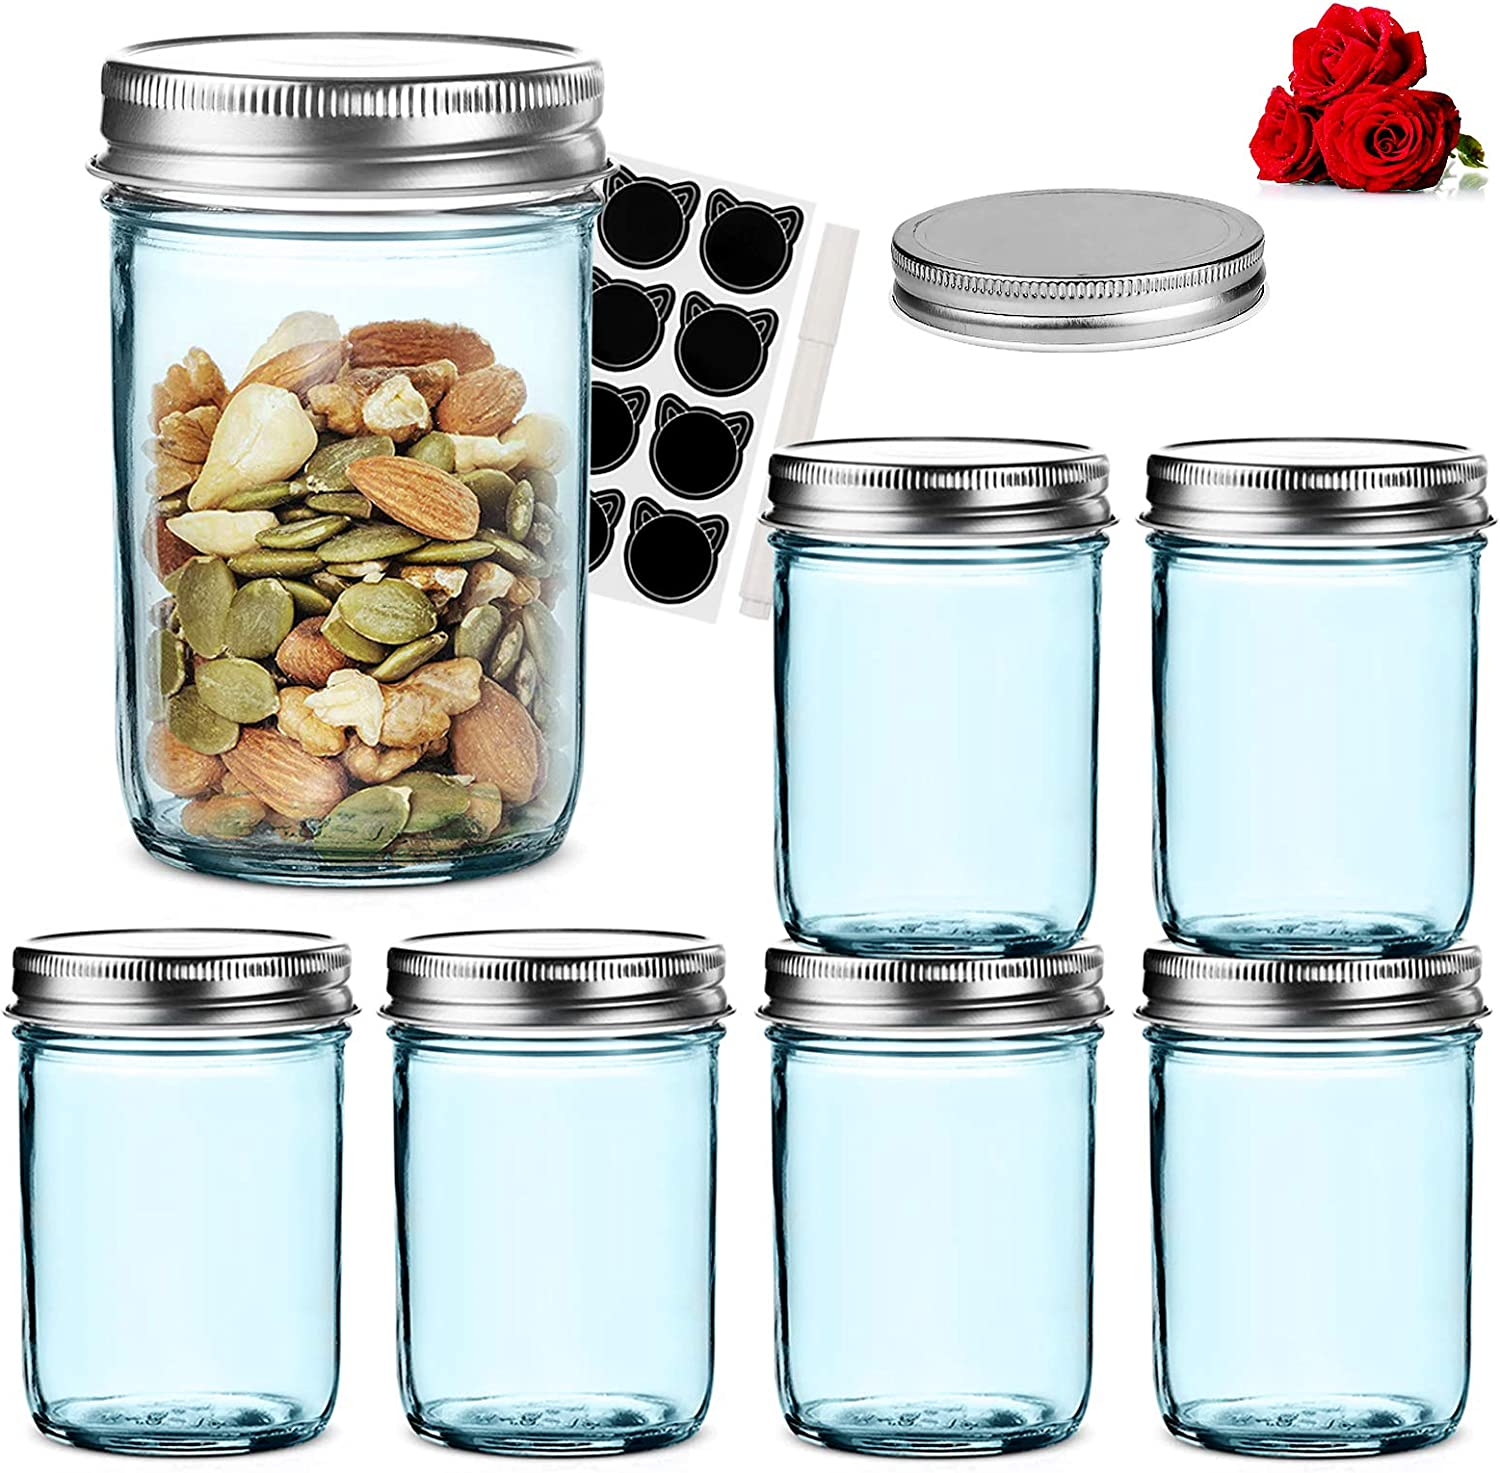 LovoIn 6 Pack 8 oz Regular Mouth Glass Jars with Silver Metal Airtight Lids, Fashioned Mason Jars for Baby Foods, Jams, Jellies, Fruit Syrups, Body Milk, Pizza Sauce - Blue